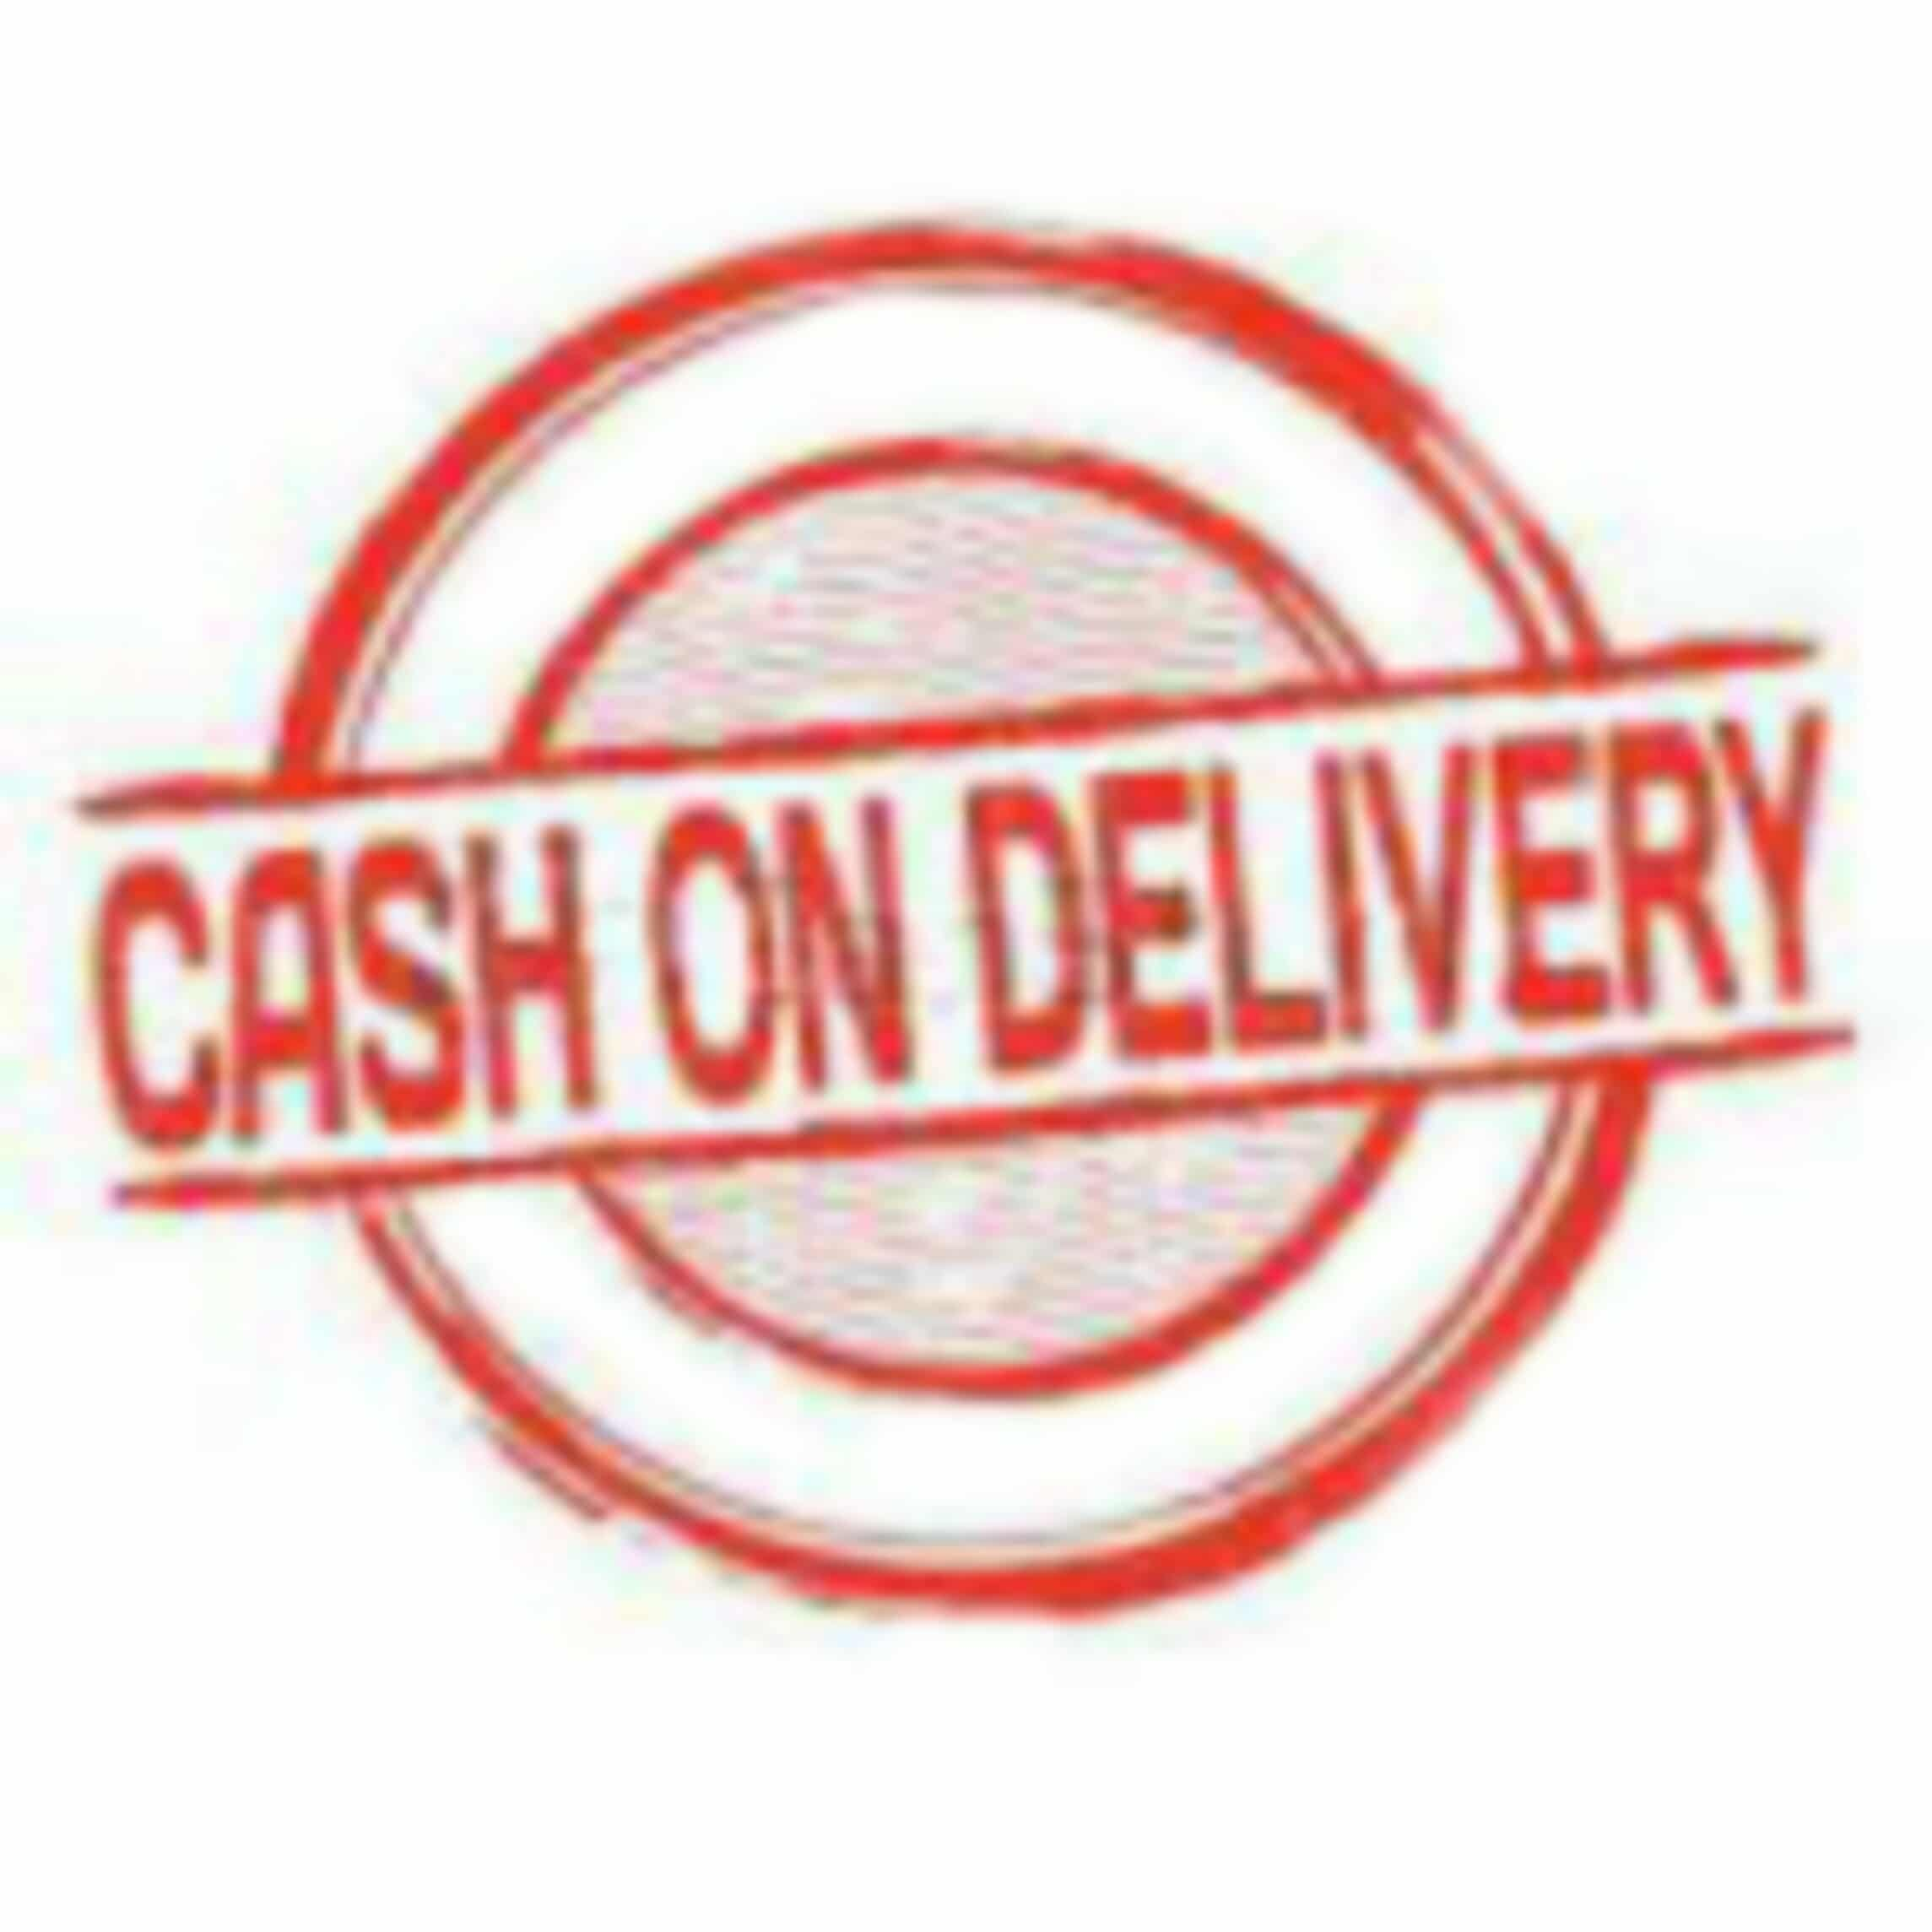 cash on delivery dogloverszw 1